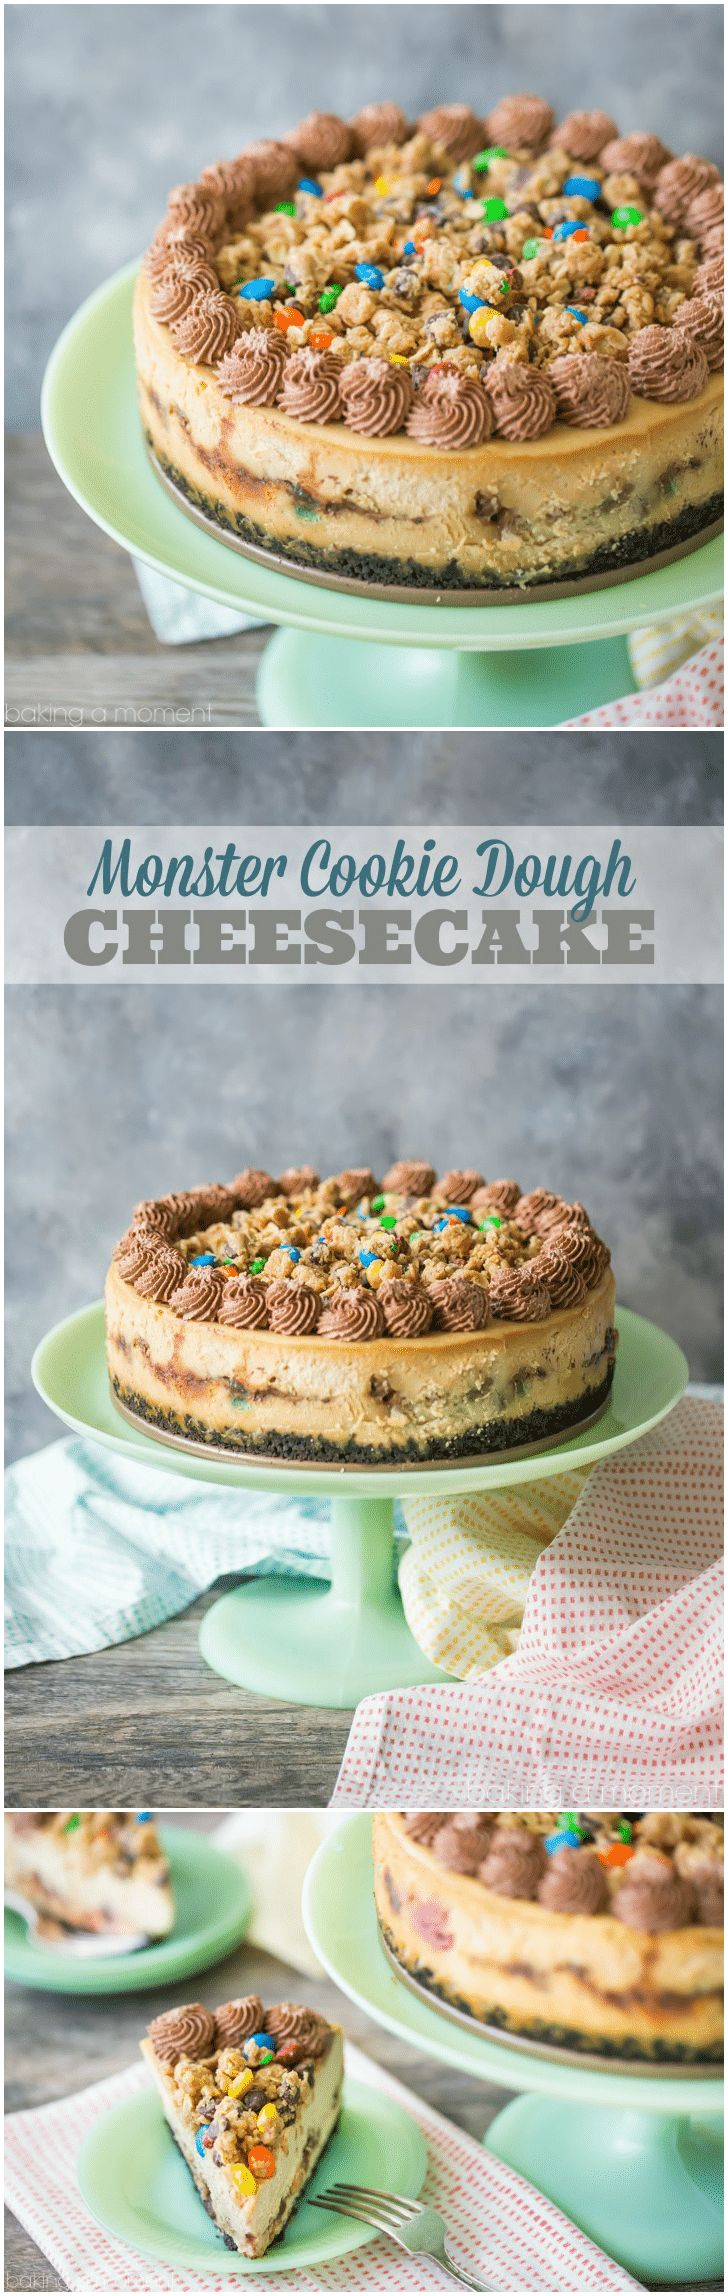 Monster Cookie Dough Cheesecake: OMG this dessert is completely over-the-top! Peanut butter cheesecake with hunks of peanut butter oatmeal m&m cookie dough, on an Oreo cookie crust, with more cookie dough on top and swirls of chocolate whipped cream. Such an incredible indulgence! food desserts cheesecake via @bakingamoment